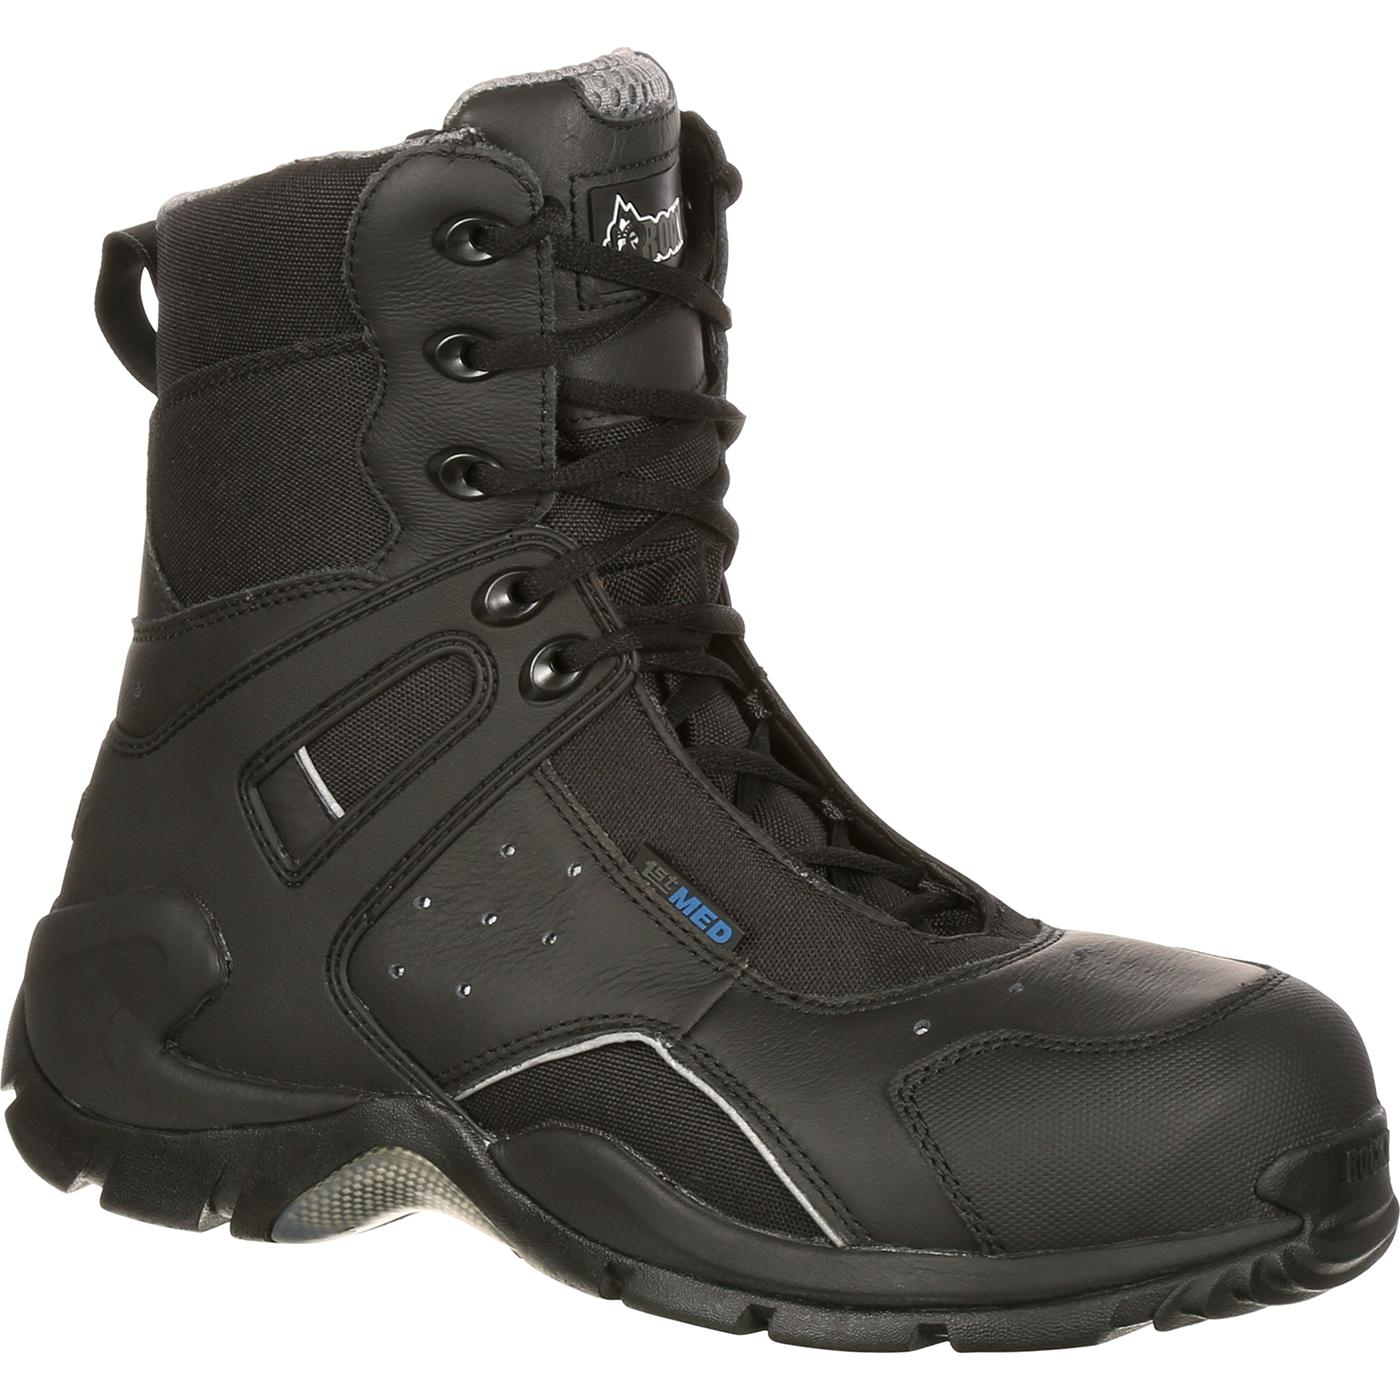 Rocky 1st Med Carbon Fiber Toe Puncture Resistant Side Zip